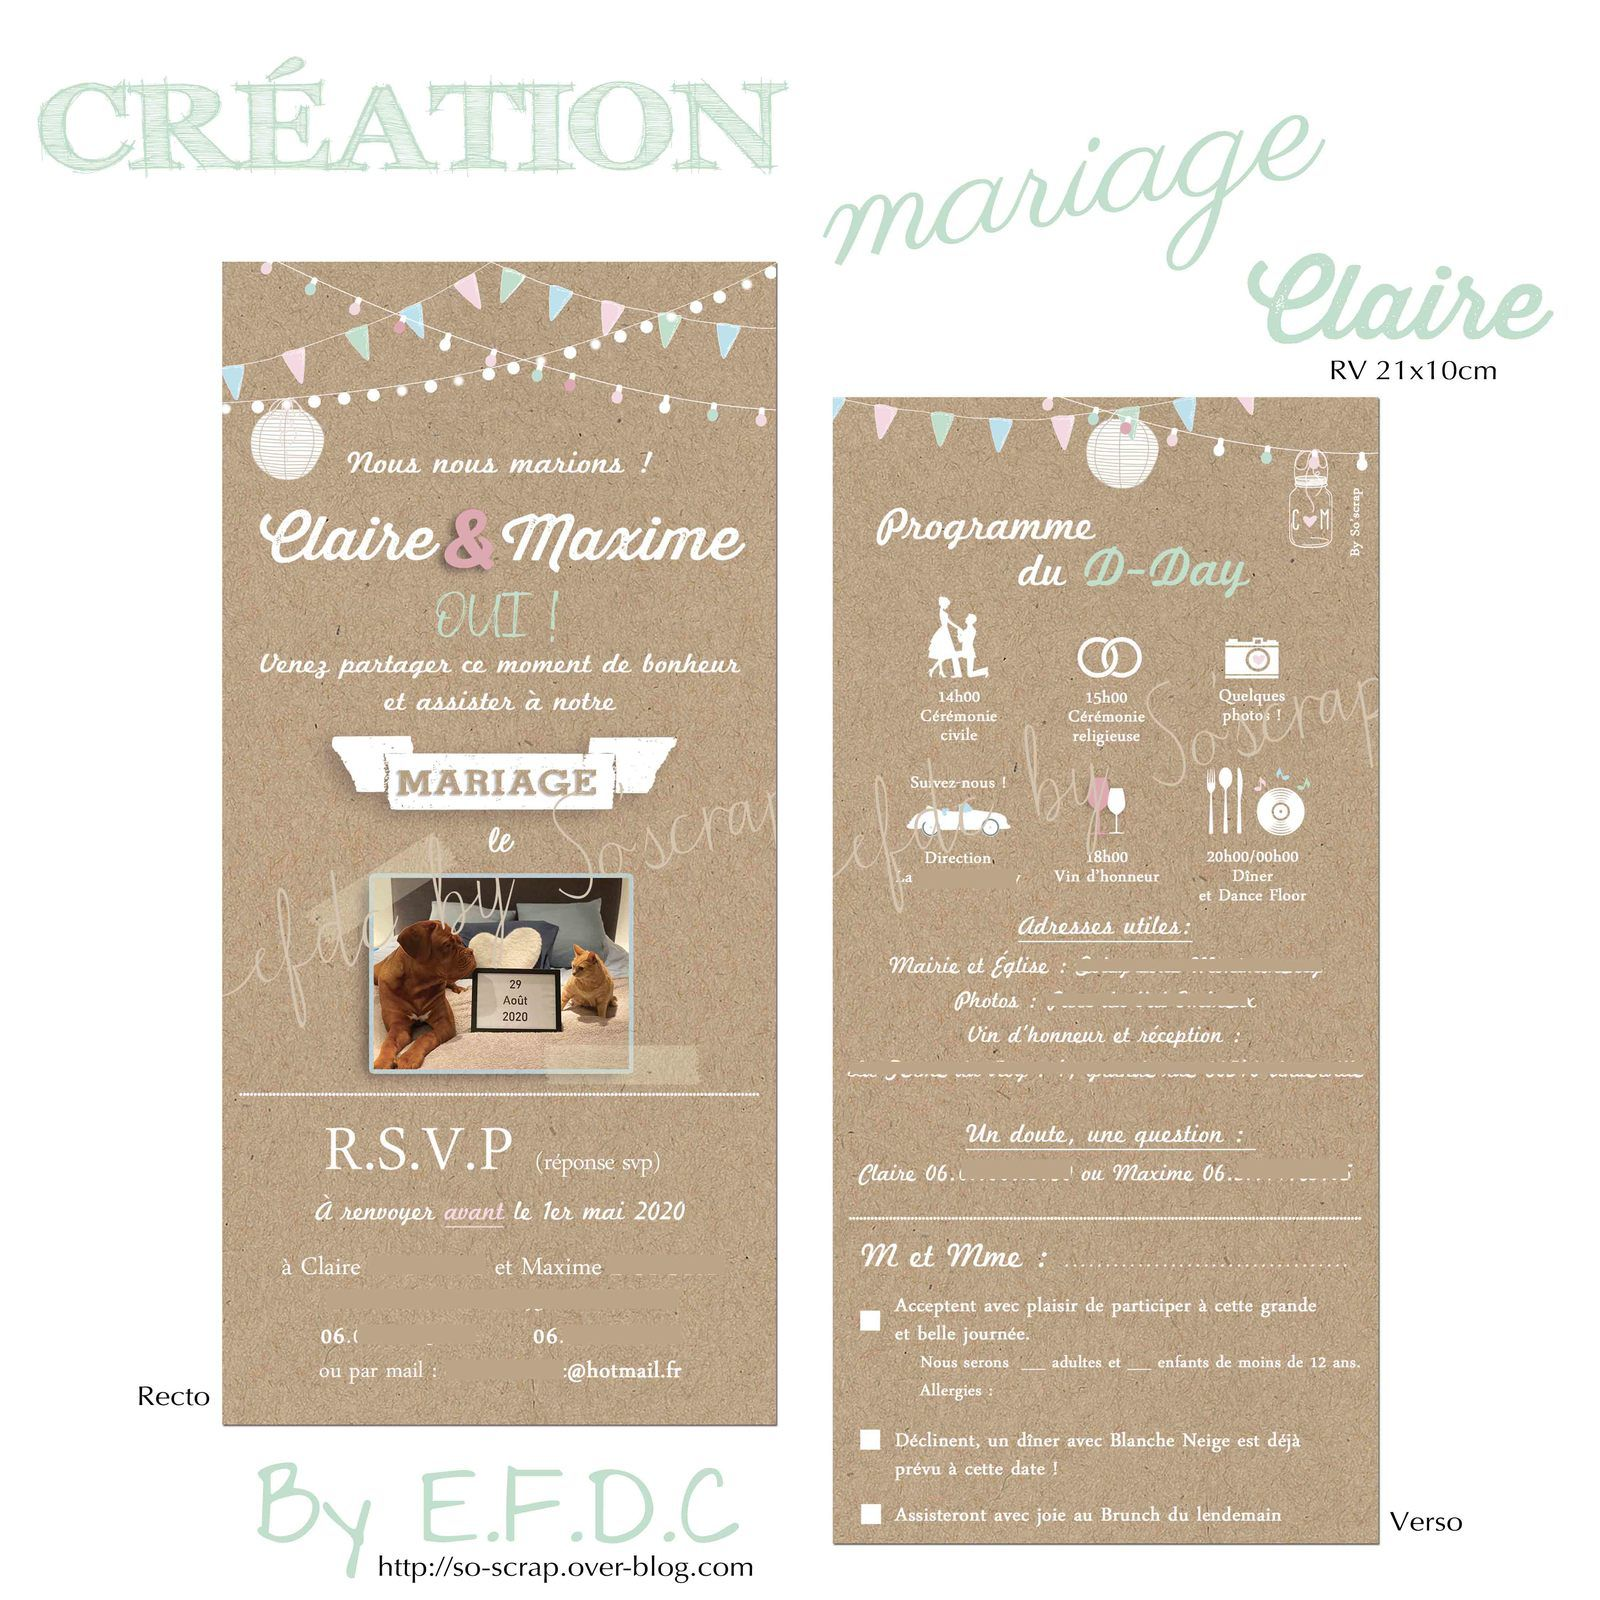 faire part invitation papeterie carterie mariage originale et sur mesure #efdcbysoscrap impression fond type kraft recto verso 21x10cm pastels à personnaliser programme avec pictogrammes horaires et adresses du jour j photo thème champêtre guinguette RSVP (coupon réponse)